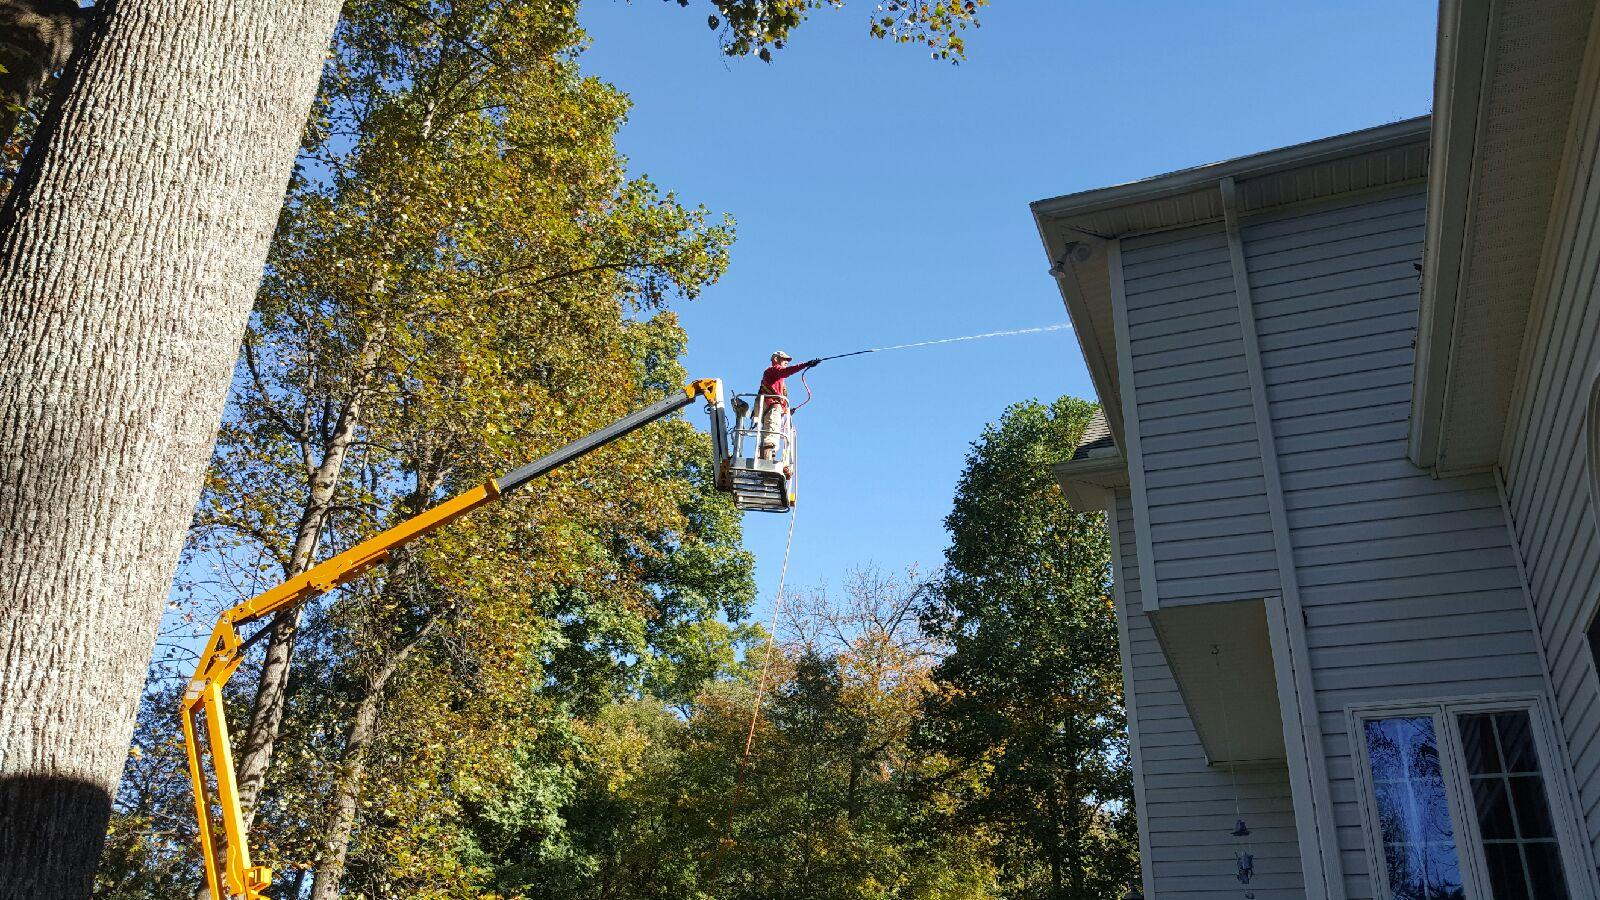 Boom Lift | Power Washing Service in Martinsburg WV